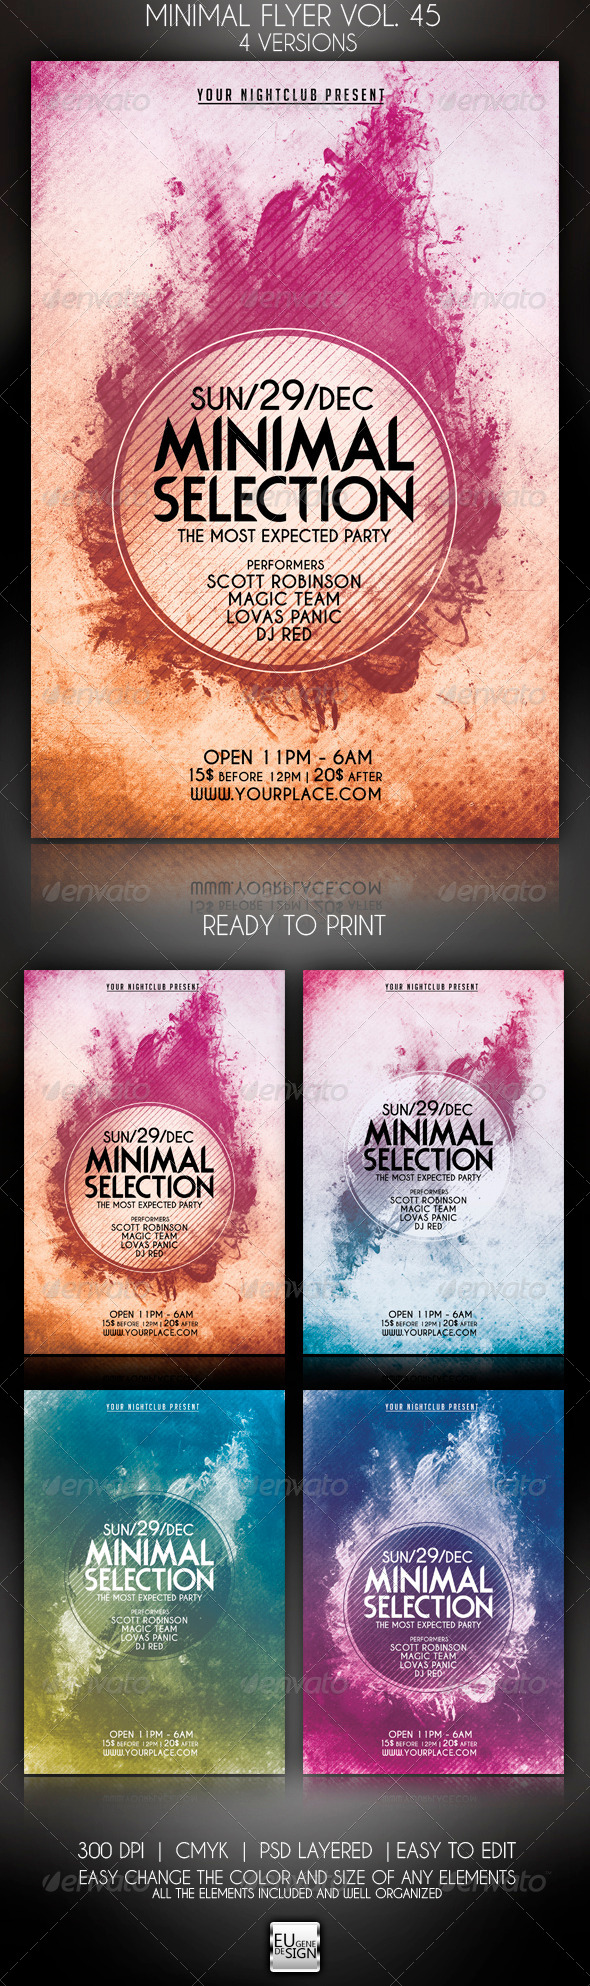 Minimal Flyer Vol. 45 - Clubs & Parties Events